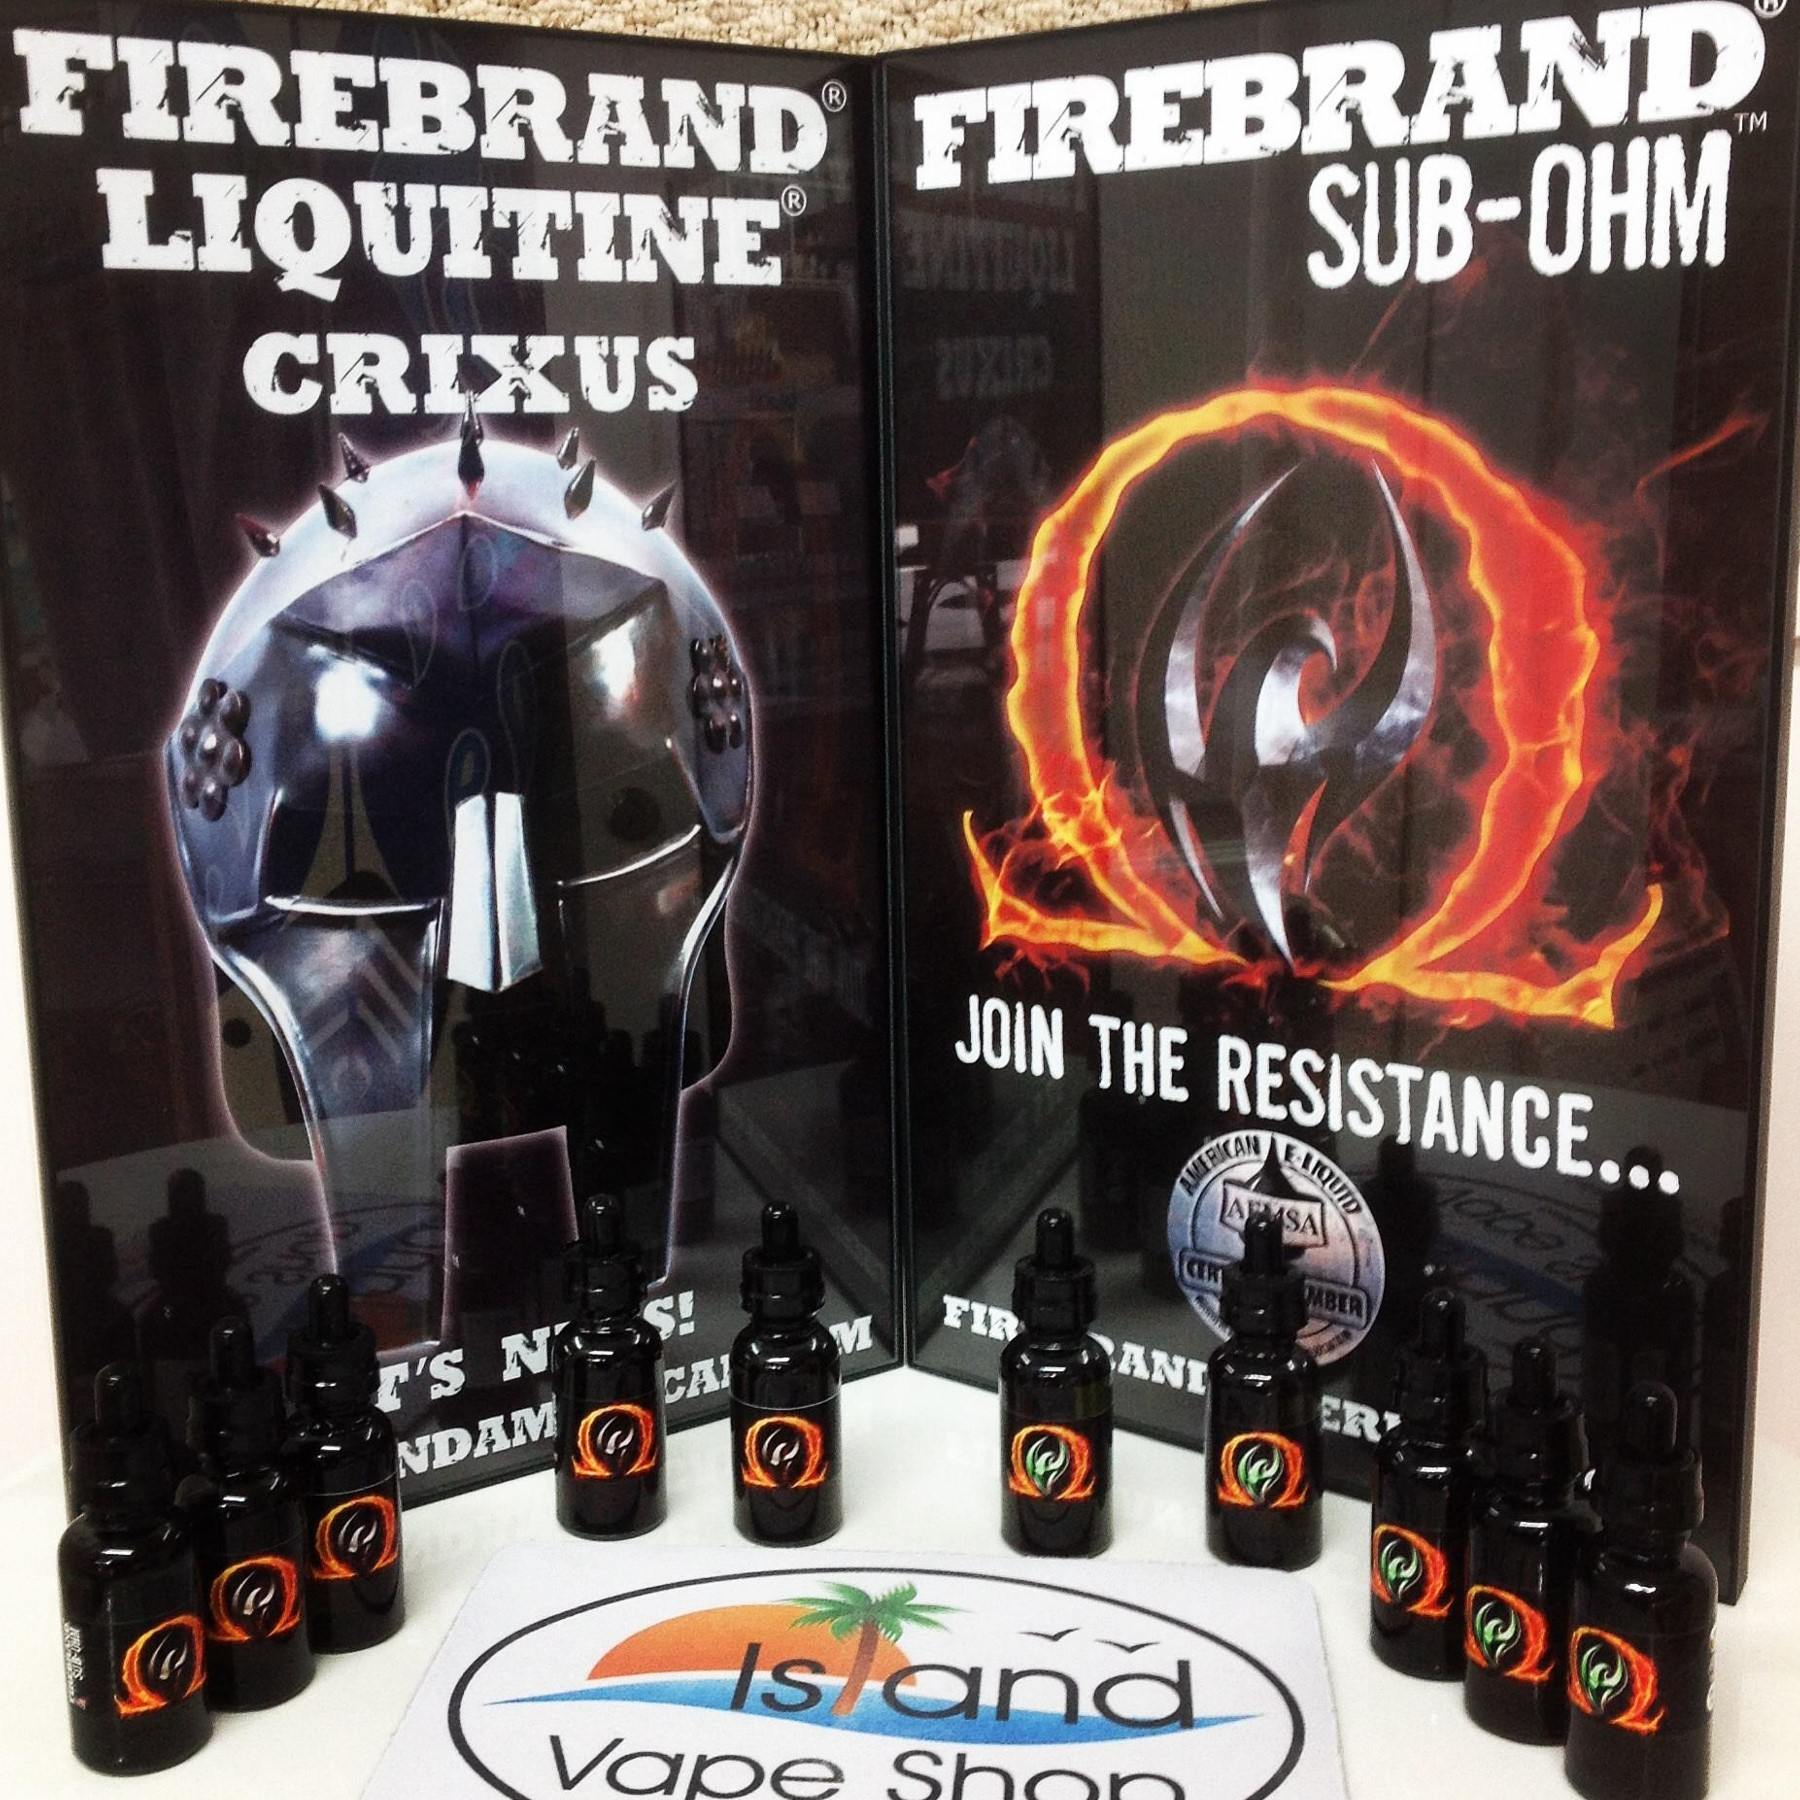 island_vape_shop_clearwater_beach_ecig_eliquid_firebrand_subohm_liquitine_juice_join_the_resistance.jpg